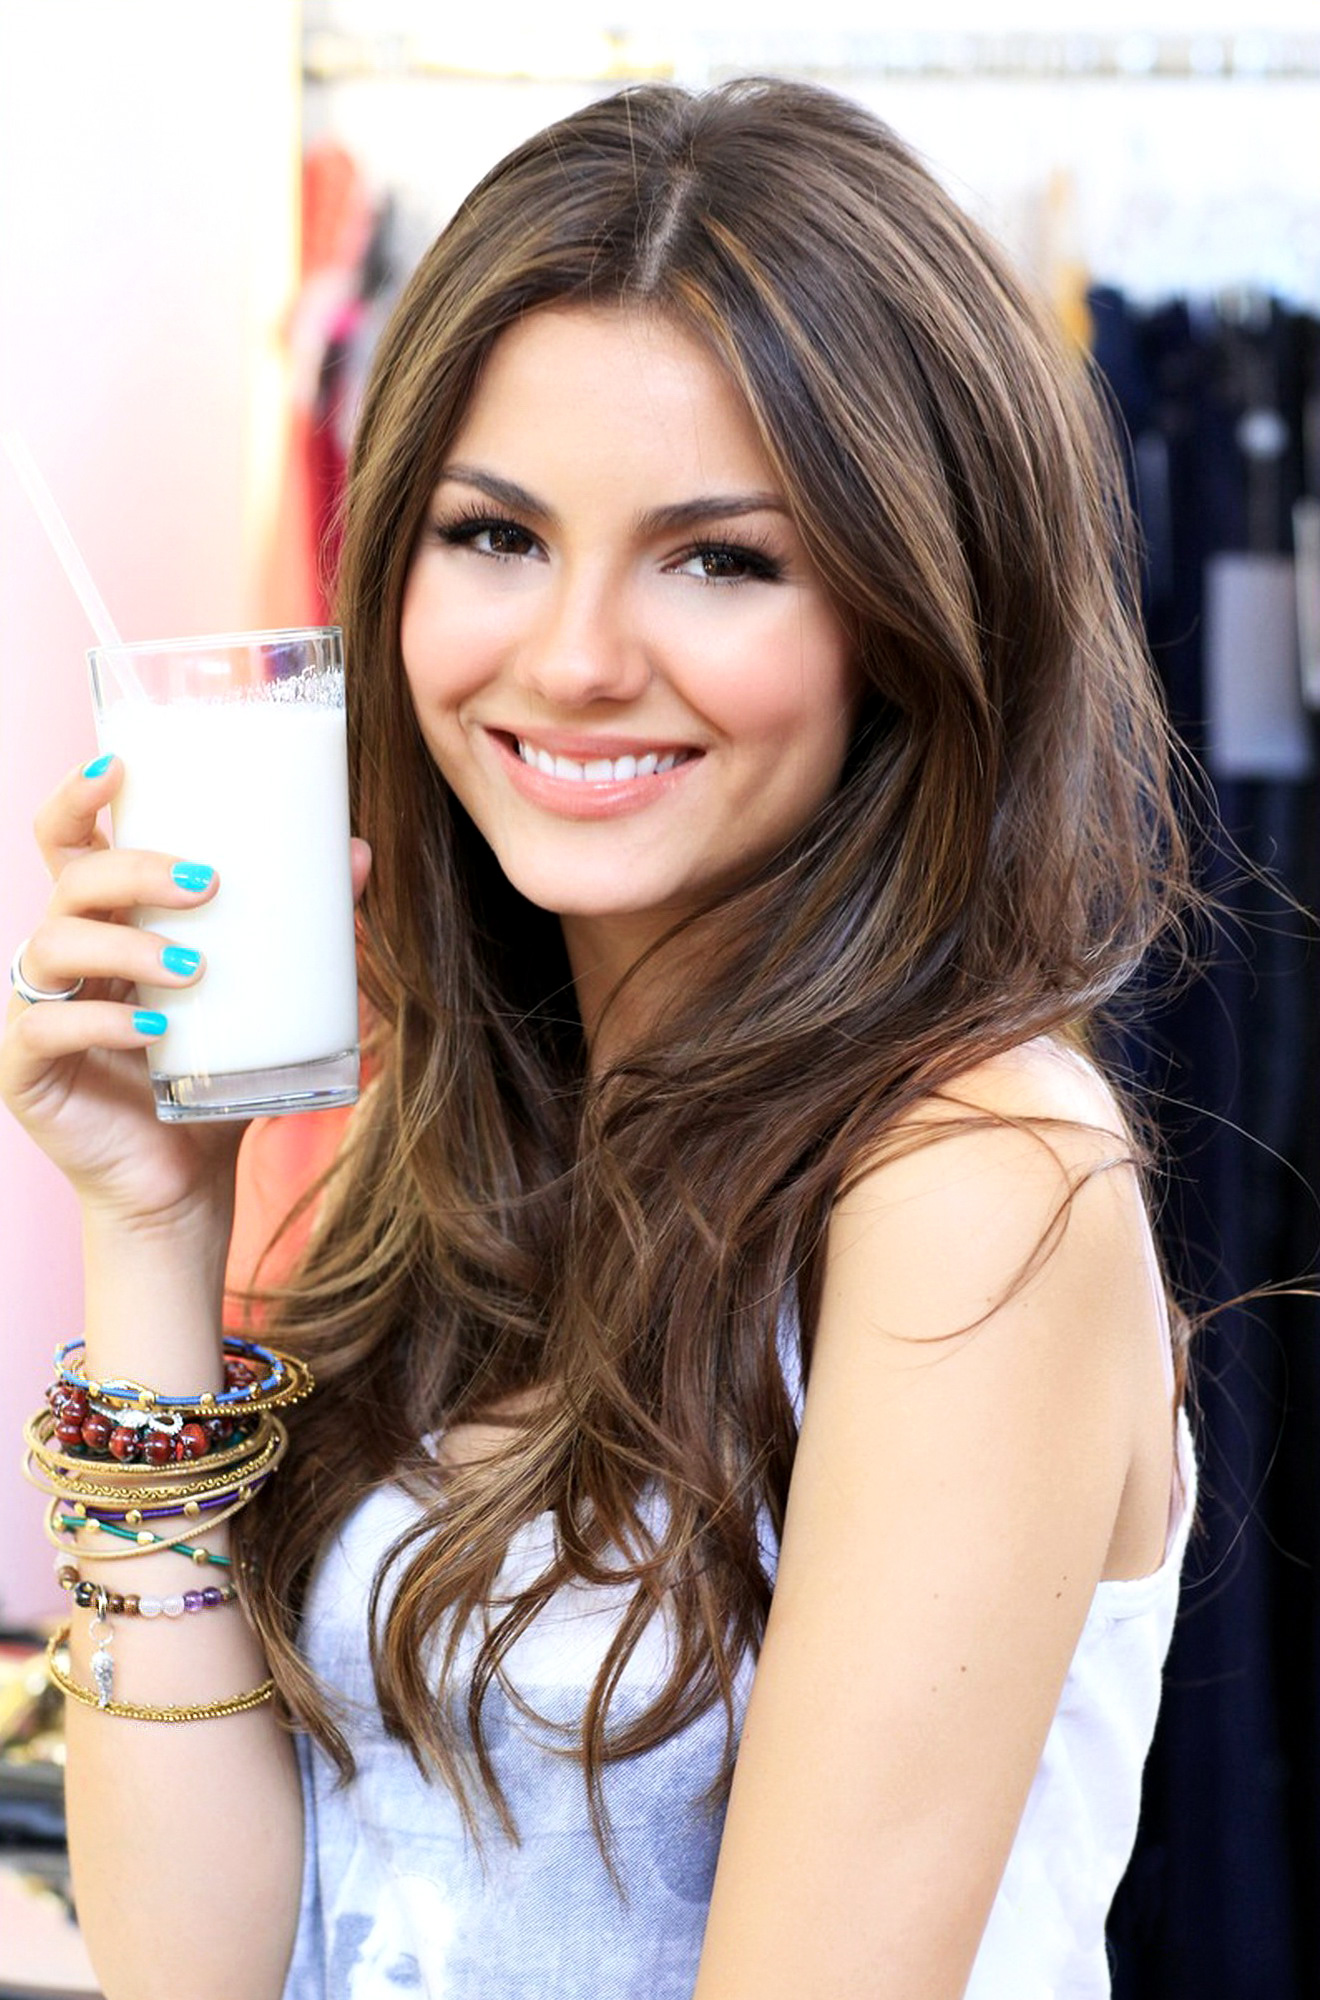 1000+ images about Victoria on Pinterest | Ariana grande, Victoria